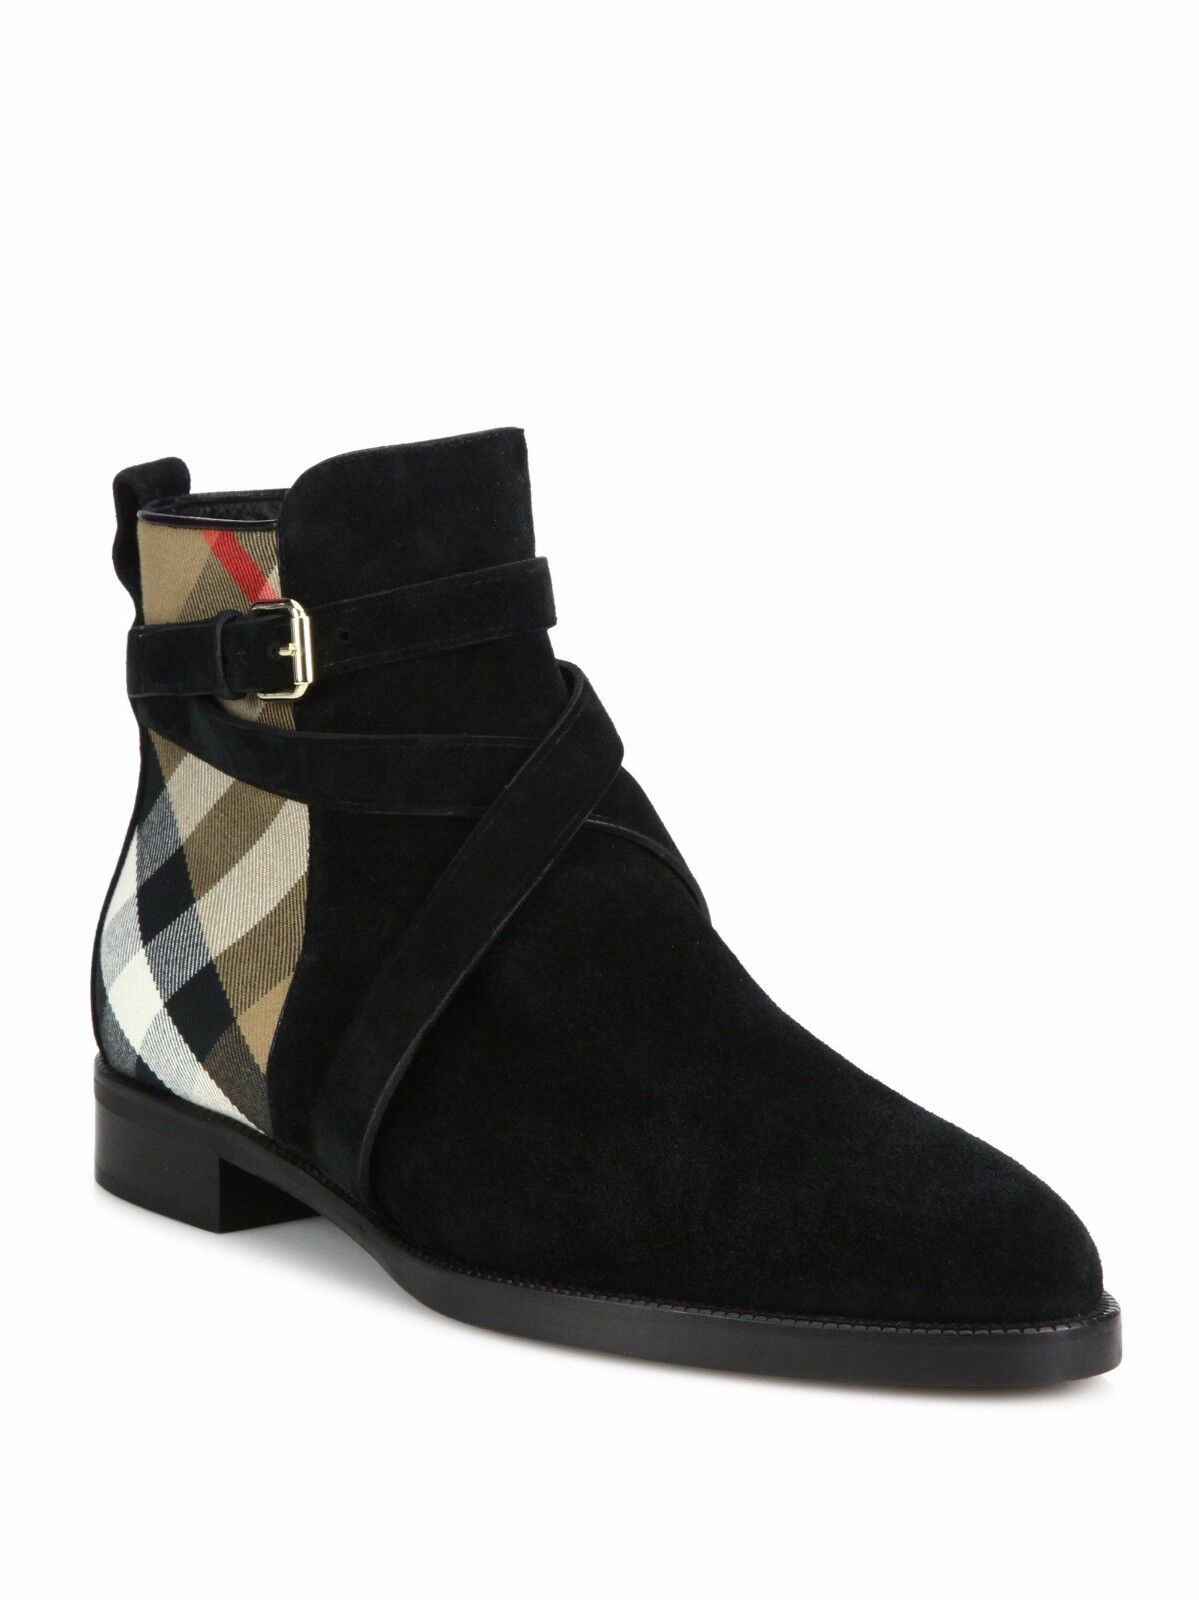 100%AUTH NEW WOMEN BURBERRY VAUGHN BLACK SUEDE CHECK BOOTS/BOOTIE /US 9.5